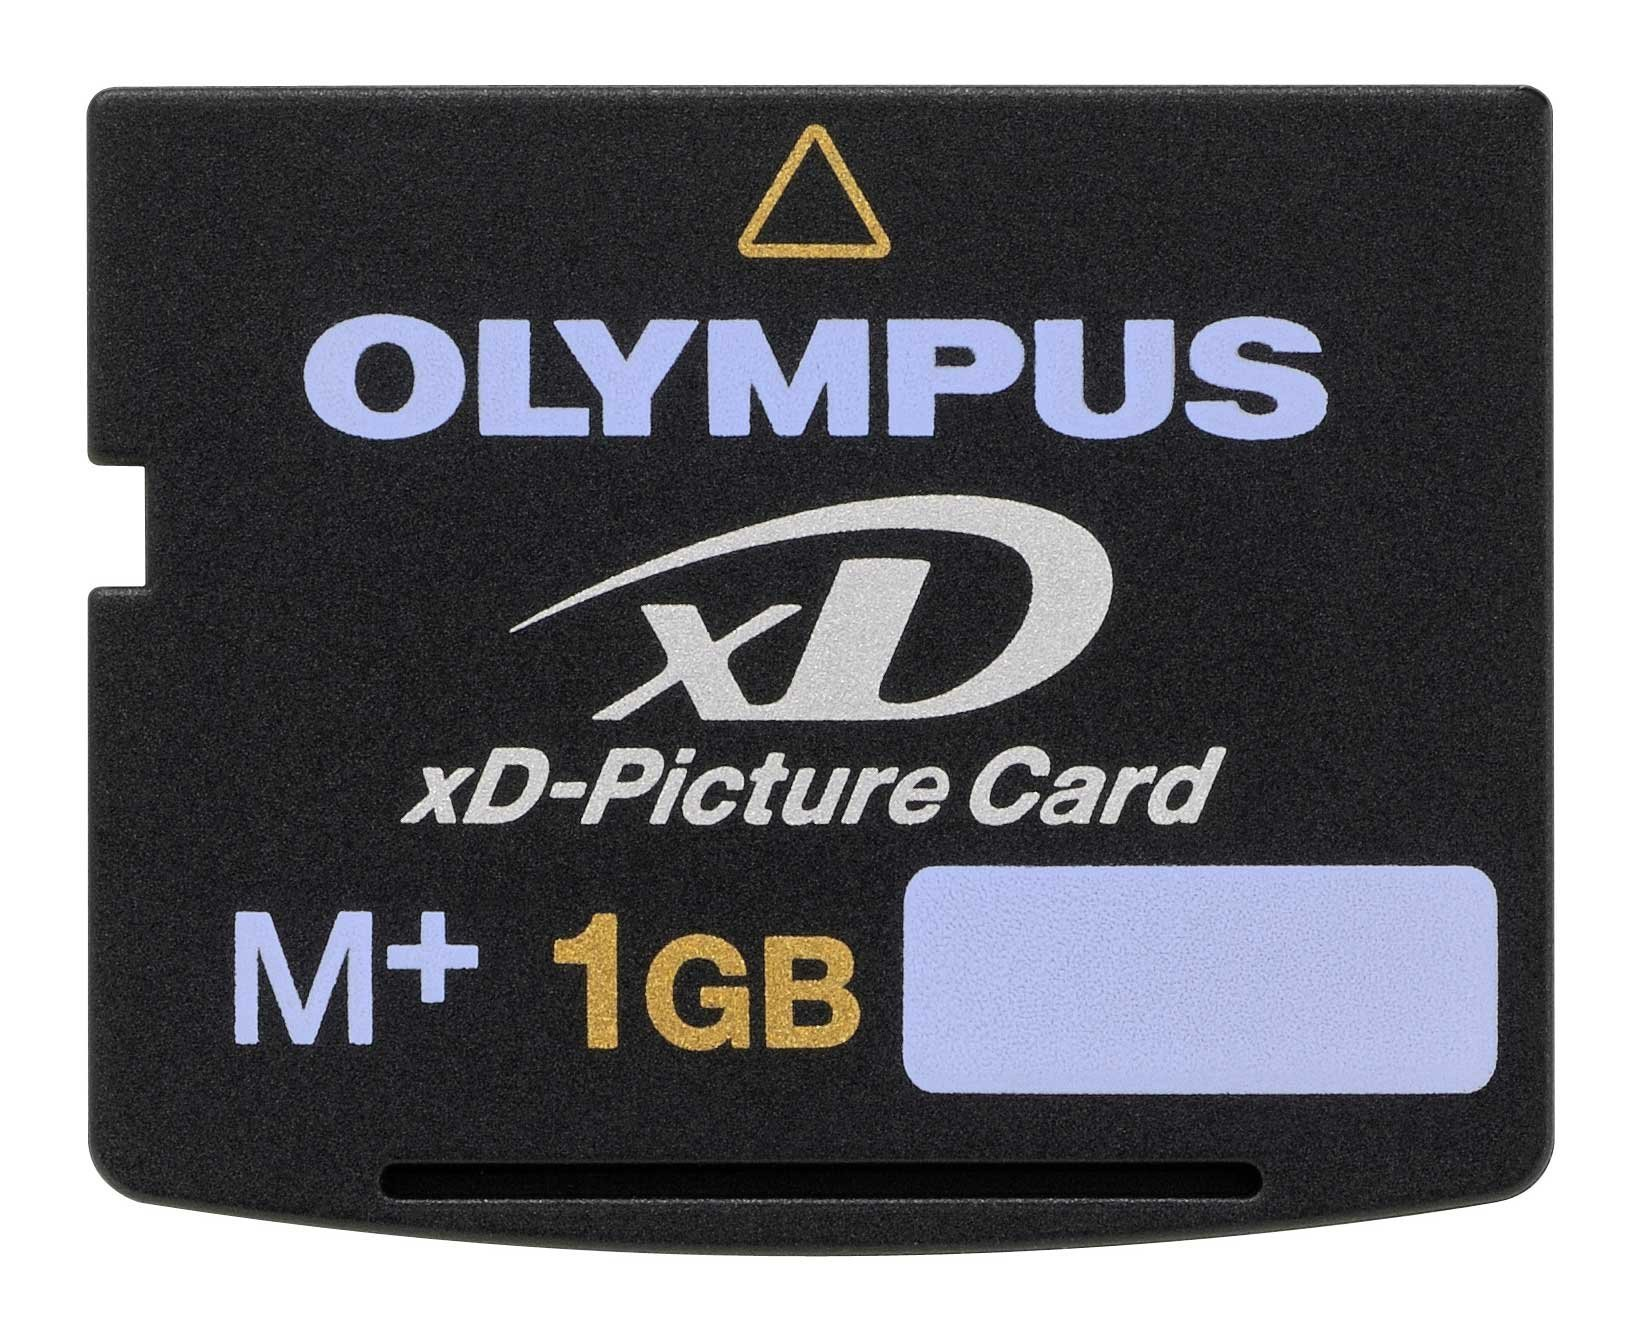 Olympus - Flash memory card - 1 GB - xD Type M+ by Olympus